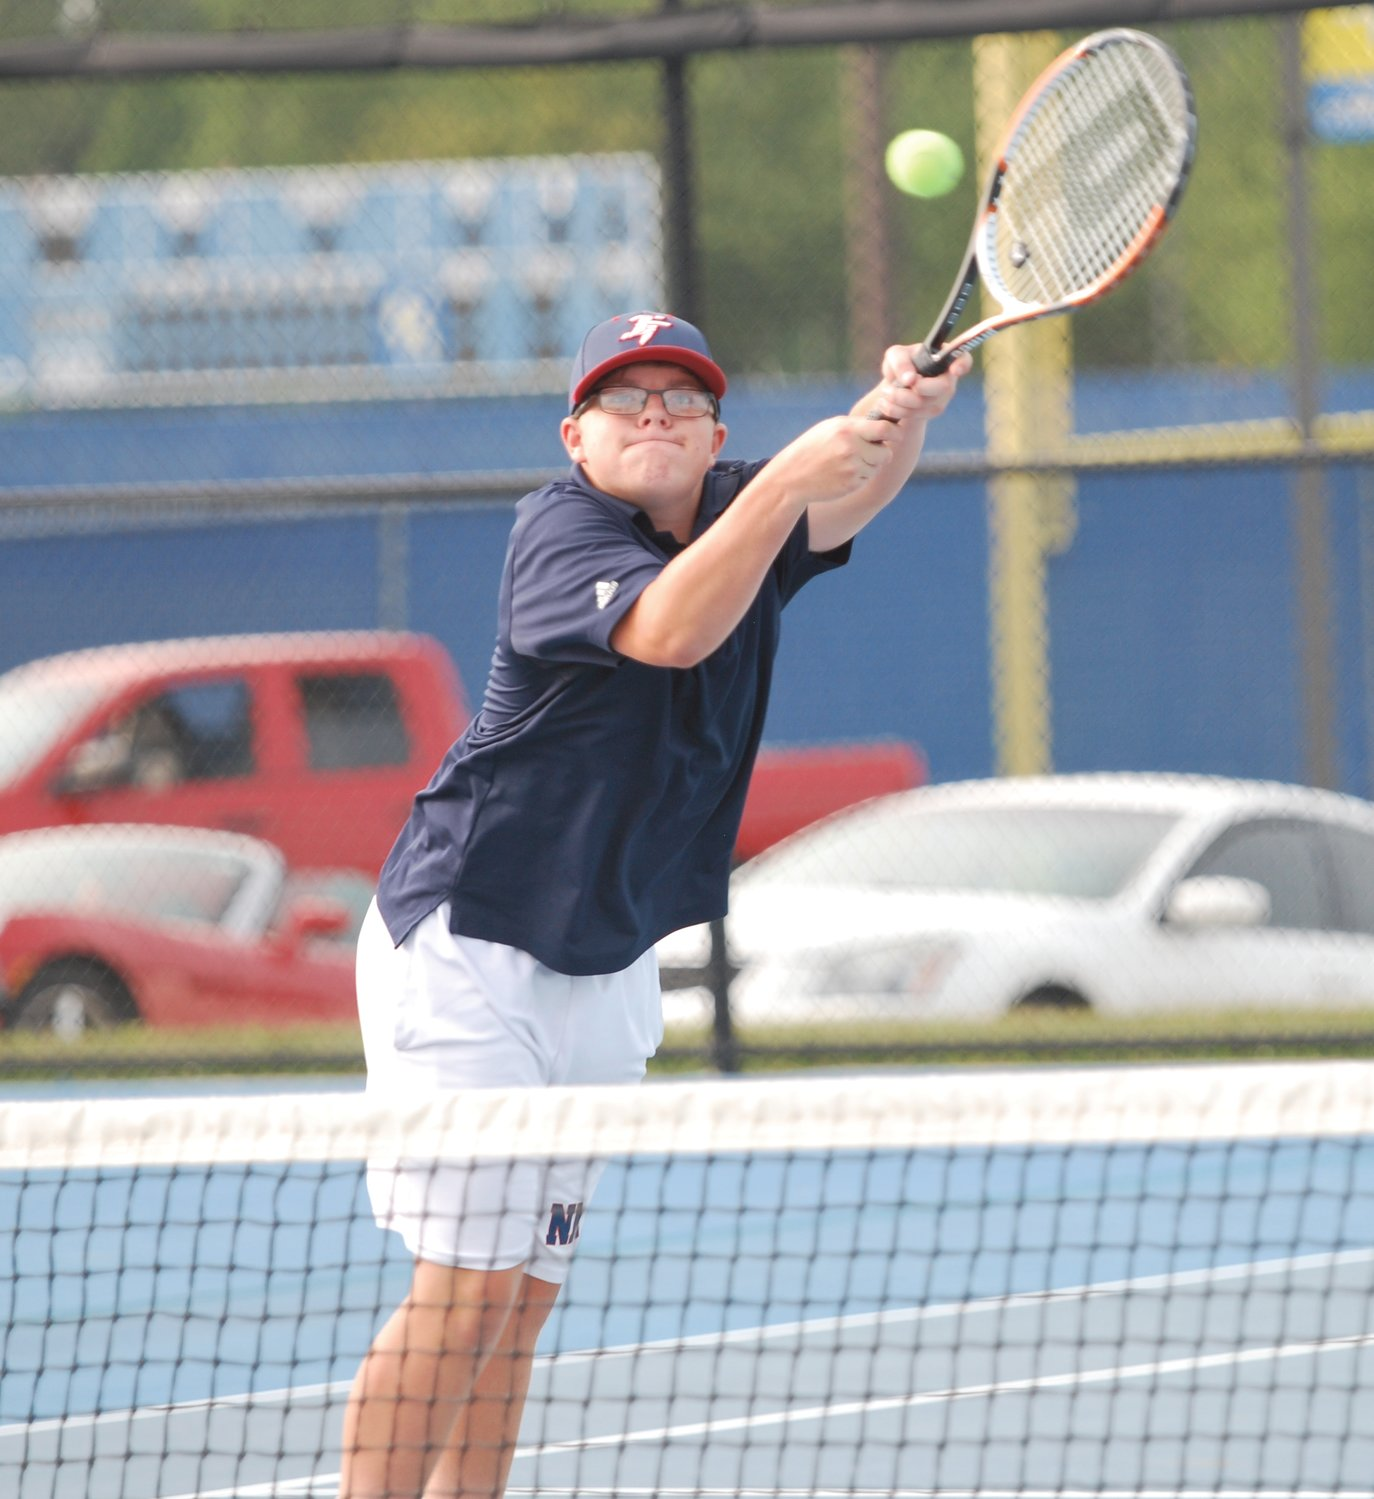 North Montgomery's Hayden Turner returns a shot on Monday during his No. 2 doubles match against Crawfordsville.